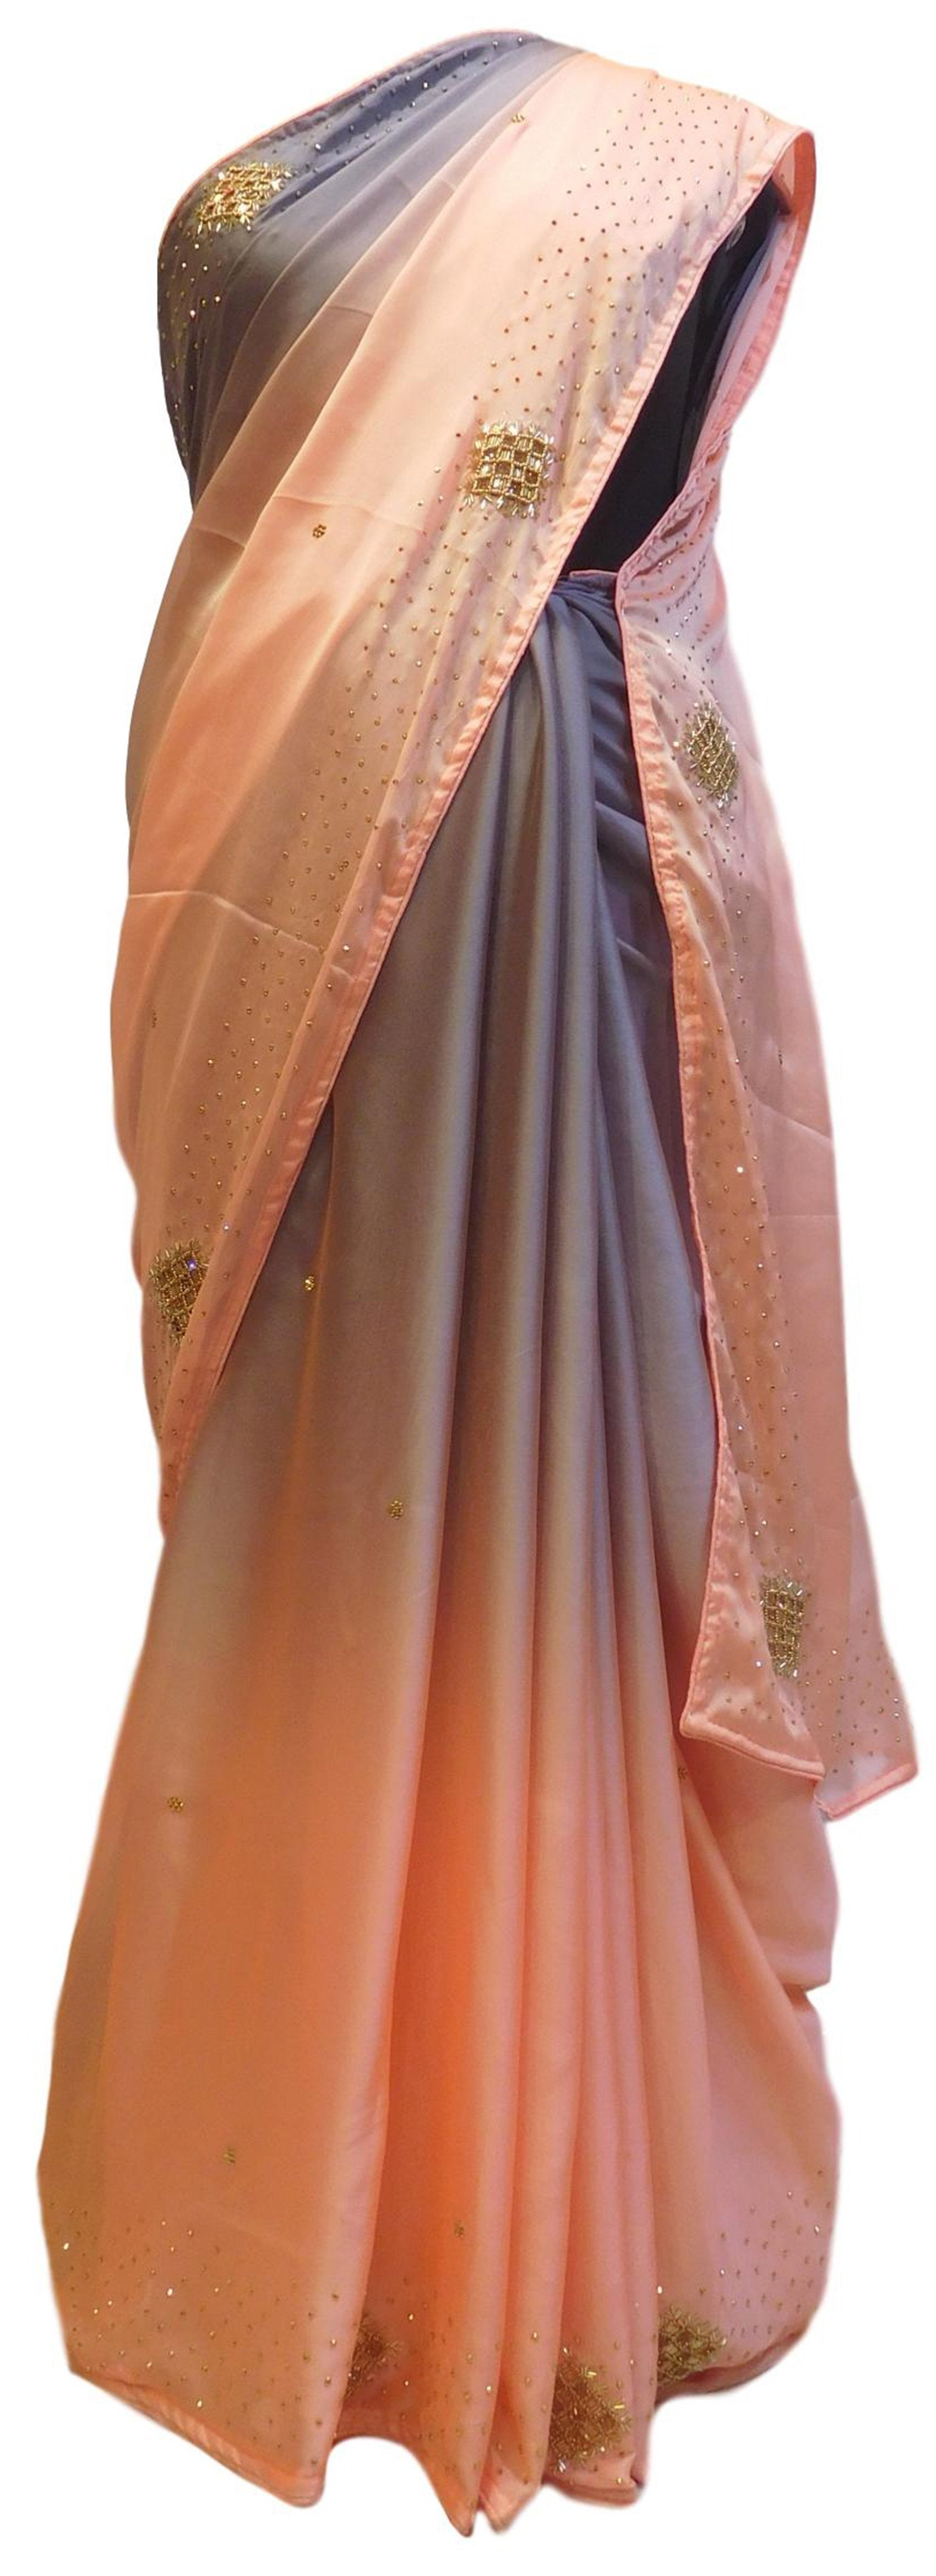 Grey & Peach Designer Bridal PartyWear Crepe Cutdana Beads Stone Work Wedding Saree Sari E033